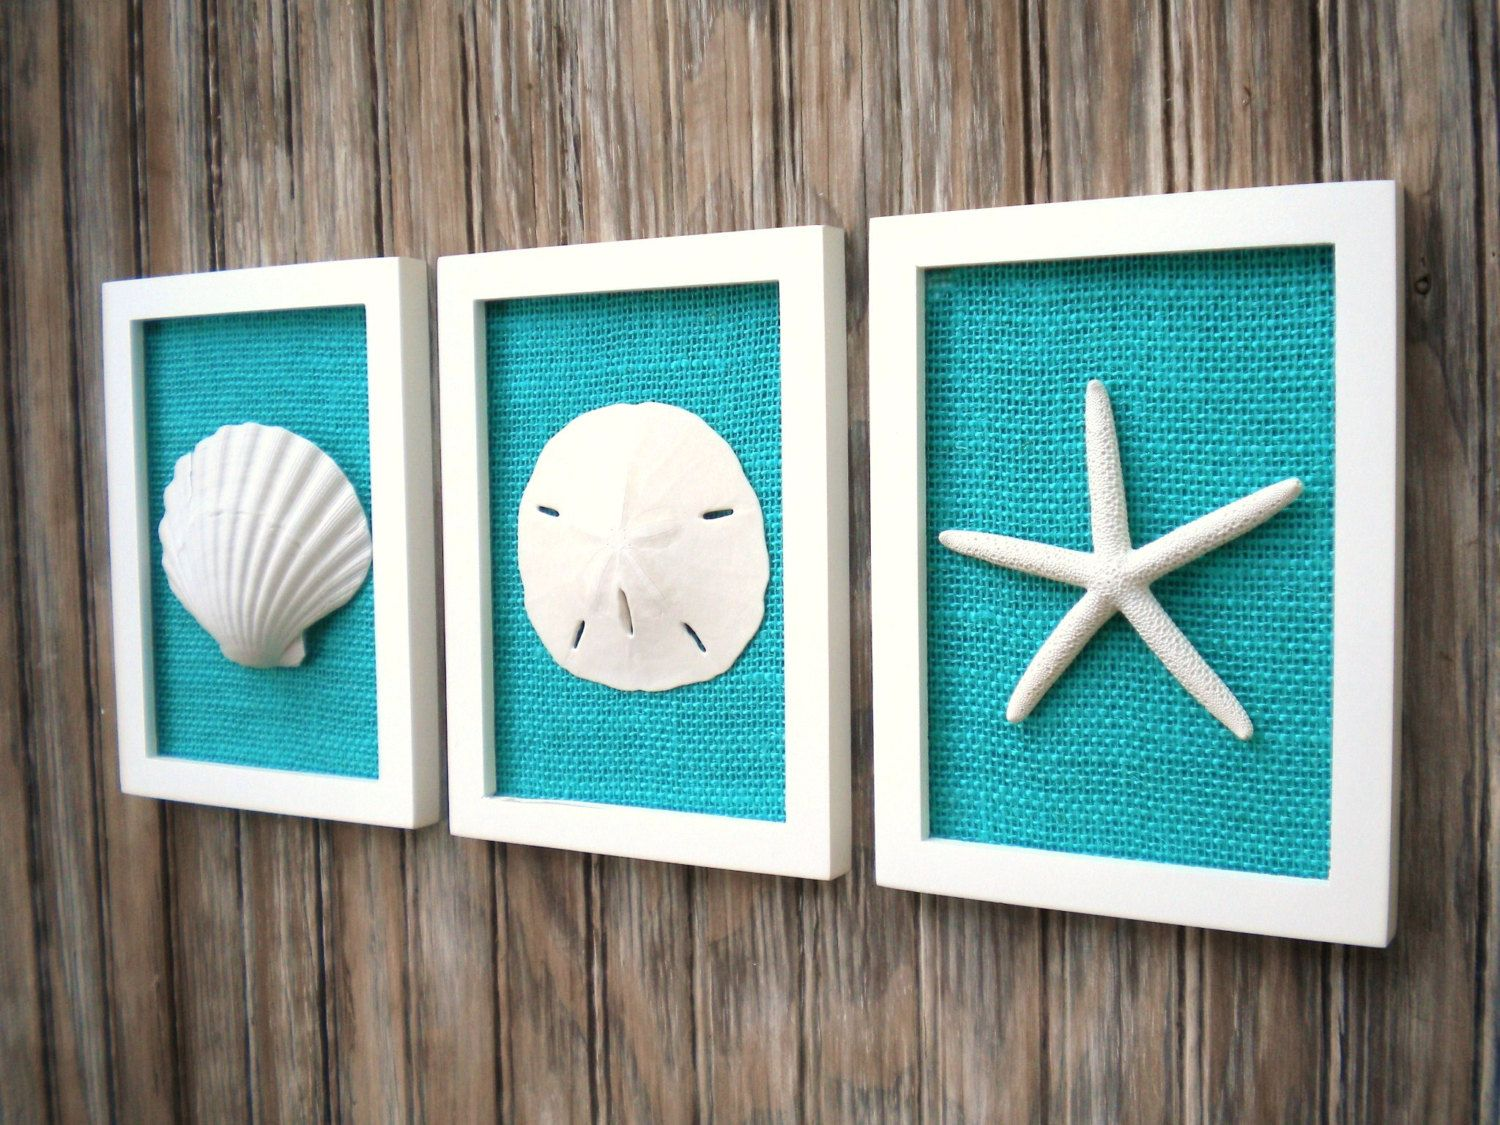 Cottage Chic Set of Beach Wall Art, Sea Shells Home Decor, Beach House Wall Decor, Sea Shell Art, Coastal Art, Pure White & Teal Burlap #purewhite